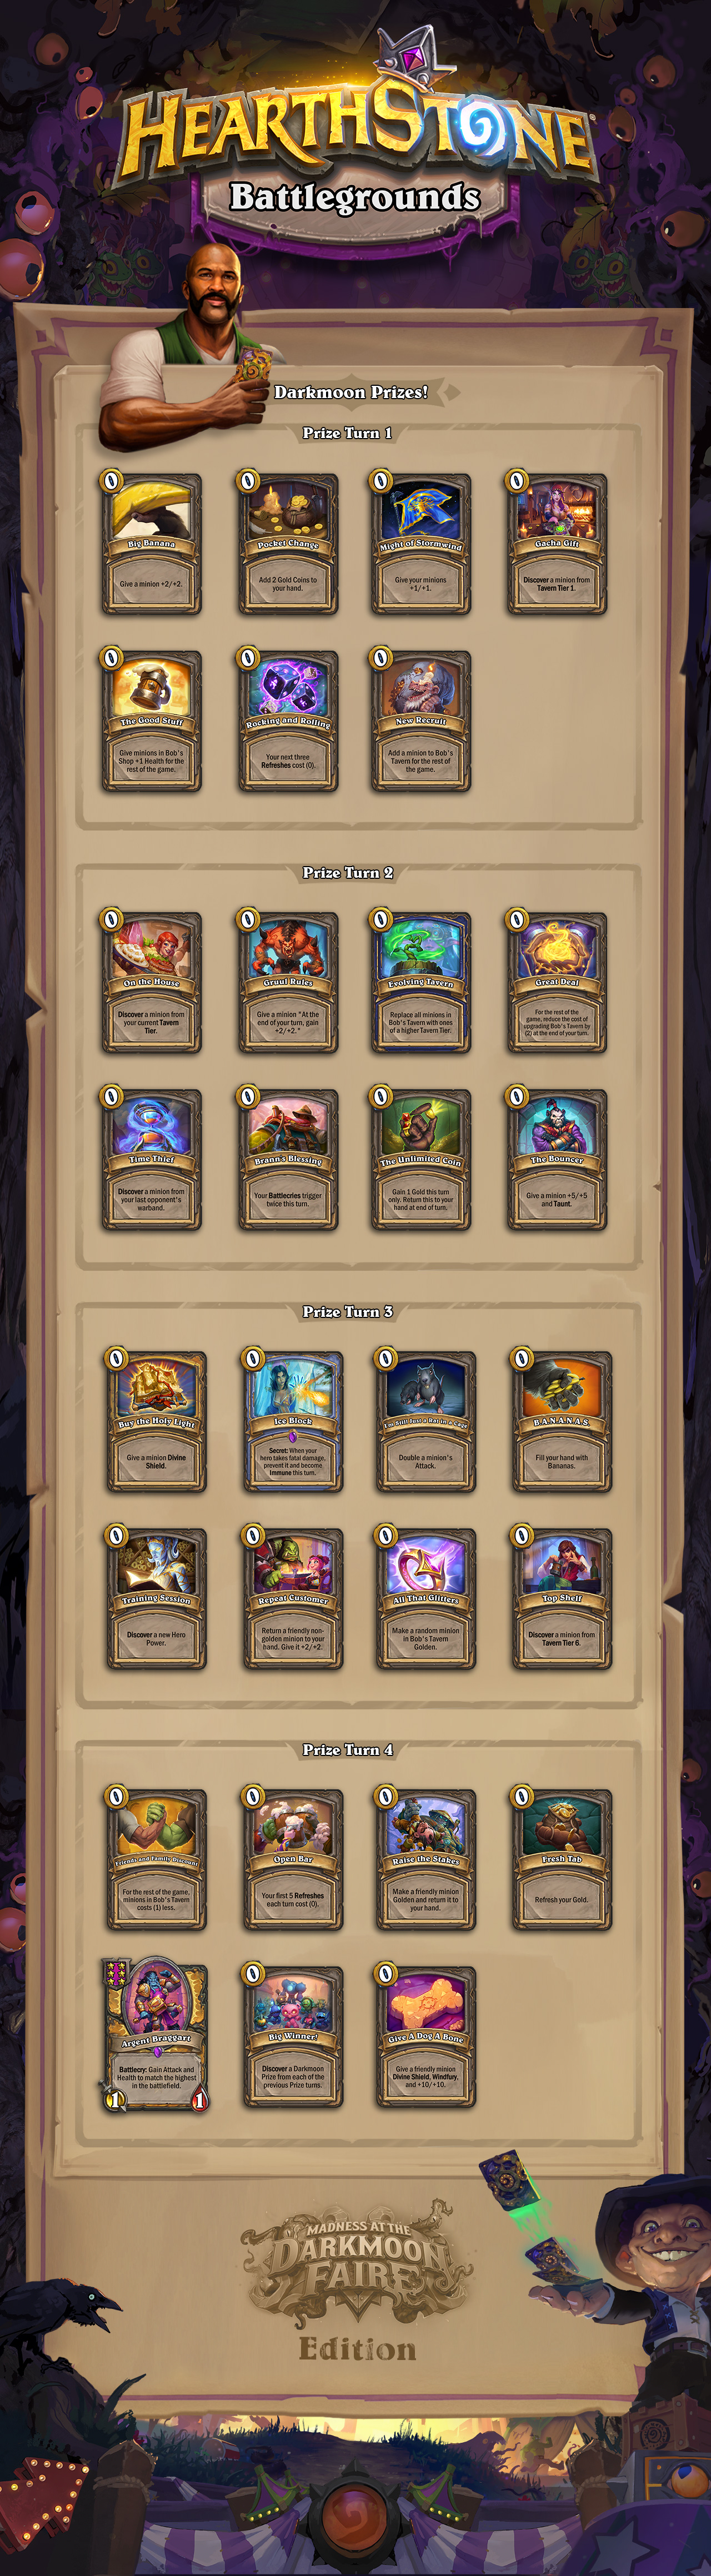 """All Darkmoon Prizes cost 0 mana. The you'll Discover from on Prize Turn 1 are •Big Banana – Give a minion +2/+2. •Pocket Change - Add 2 Gold Coins to your hand. •Gacha Gift - Discover a minion from Tavern Tier 1. •The Good Stuff - Give minions in Bob's Shop +1 Health for the rest of the game. •Rocking and Rolling - Your next 3 Refreshes cost (0). •New Recruit - Add a minion to Bob's Tavern for the rest of the game. •Might of Stormwind - Give your minions +1/+1. Prizes you'll Discover from on Prize Turn 2 are •On the House - Discover a minion from your current Tavern Tier. •Gruul Rules - Give a minion """"At the end of your turn, gain +2/+2."""" •Evolving Tavern- Replace all minions in Bob's Tavern with ones of a higher Tavern Tier. •Great Deal - For the rest of the game, reduce the cost of upgrading Bob's Tavern by (2) at the end of your turn. •Time Thief - Discover a minion from your last opponent's warband. •Brann's Blessing - Your Battlecries trigger twice this turn. •The Unlimited Coin - Gain 1 Gold this turn only. Return this to your hand at end of turn. •The Bouncer - Give a minion +5/+5 and Taunt. Prizes you'll Discover from on Prize Turn 3 are •Buy the Holy Light - Give a minion Divine Shield.  •Ice Block - Secret: When your hero takes fatal damage, prevent it and become Immune this turn.  •I'm Still Just a Rat in a Cage - Double a minion's Attack. •B.A.N.A.N.A.S. - Fill your hand with Bananas! (Mix of Bananas and Big Bananas, 1 in 3 chance right now) •Training Session - Discover a new Hero Power. •Repeat Customer - Return a friendly non-golden minion to your hand. Give it +2/+2. •All That Glitters - Make a random minion in Bob's Tavern Golden. •Top Shelf - Discover a minion from Tavern Tier 6. Prizes you'll Discover from on Prize Turn 4 are •Friends and Family Discount - For the rest of the game, minions in Bob's Tavern costs (1) less. •Open Bar - Your first 5 Refreshes each turn cost (0). •Raise the Stakes - Make a friendly minion Golden and return it to your ha"""